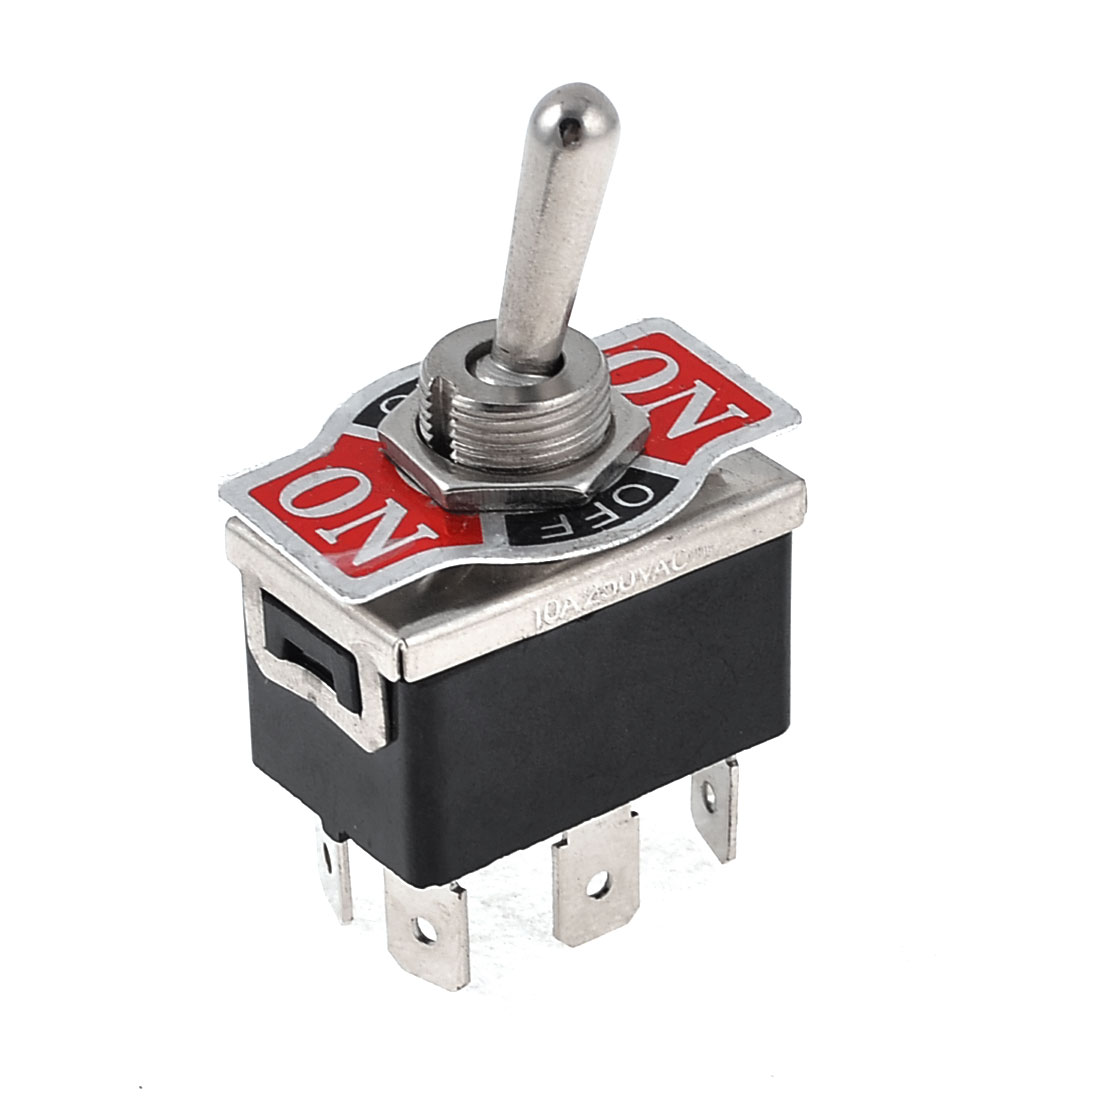 Vehicle Car Black 6 Pin 3 Position On/Off/On DPDT Toggle Switch